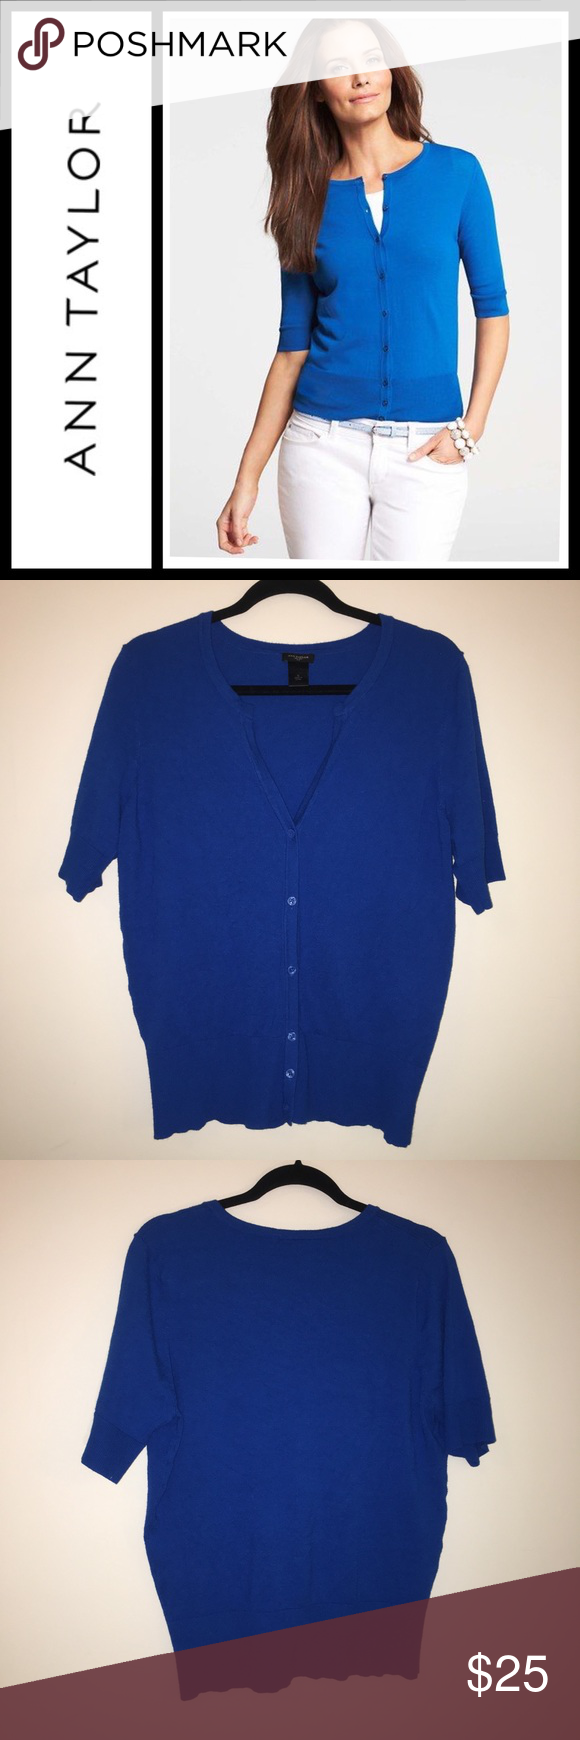 Ann Taylor Royal Blue Short Sleeve Cardigan | Royal blue shorts ...